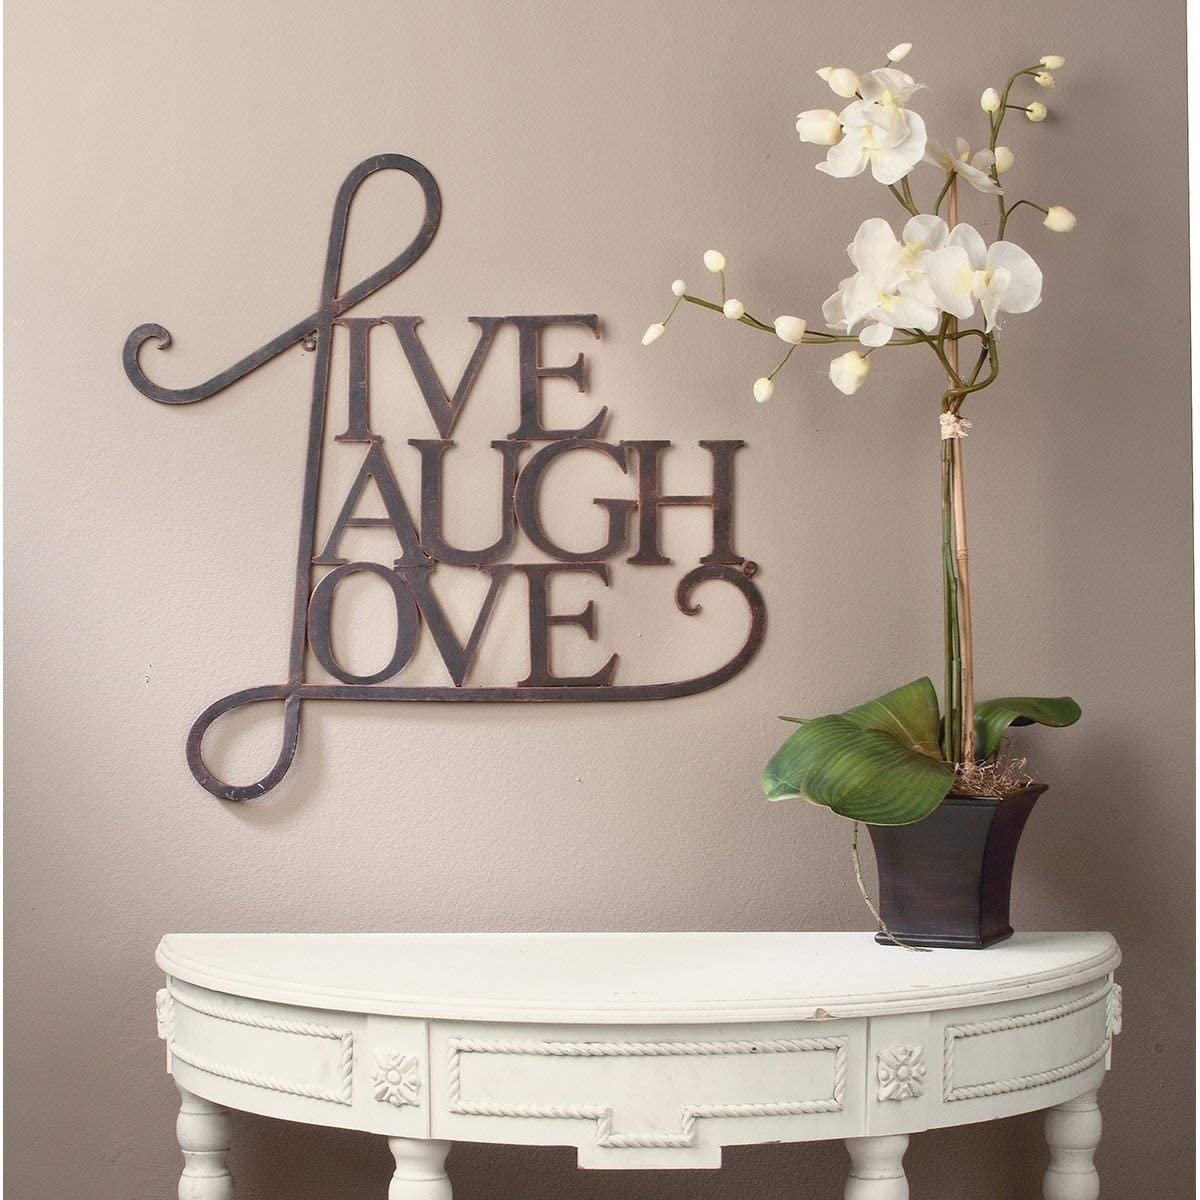 20.55 x 21.4 x 0.15 Brown Live Laugh Love Themed Metal Sign, Vintage Wall Decor,Ultra Light Inspirational Quotes Art Rustic Industrial Antique Copper Durable Cute, Metal